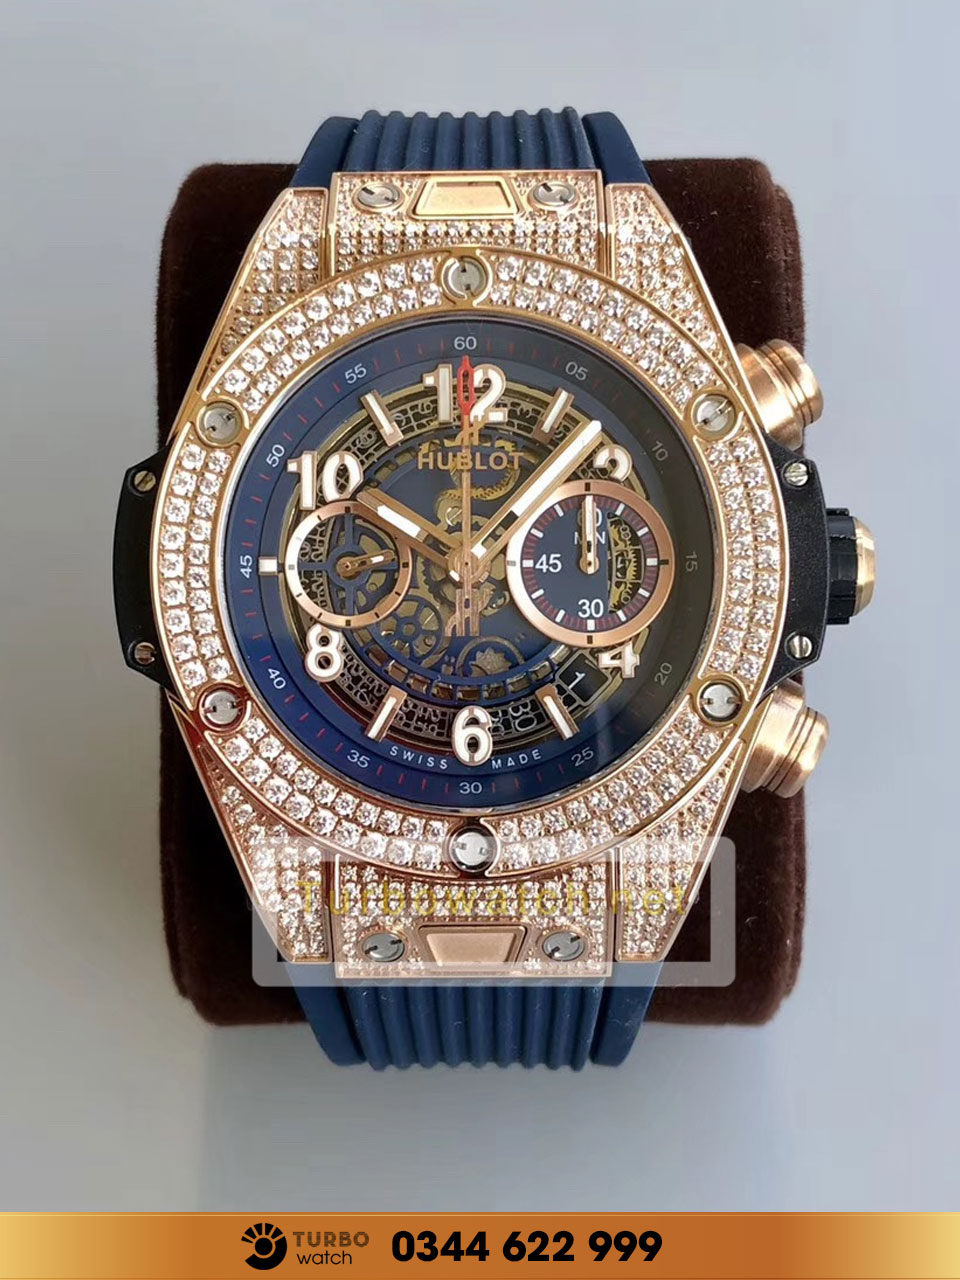 Hublot BIG BANG UNICO KING GOLD PAVE bleu replica 1:1 cao cấp